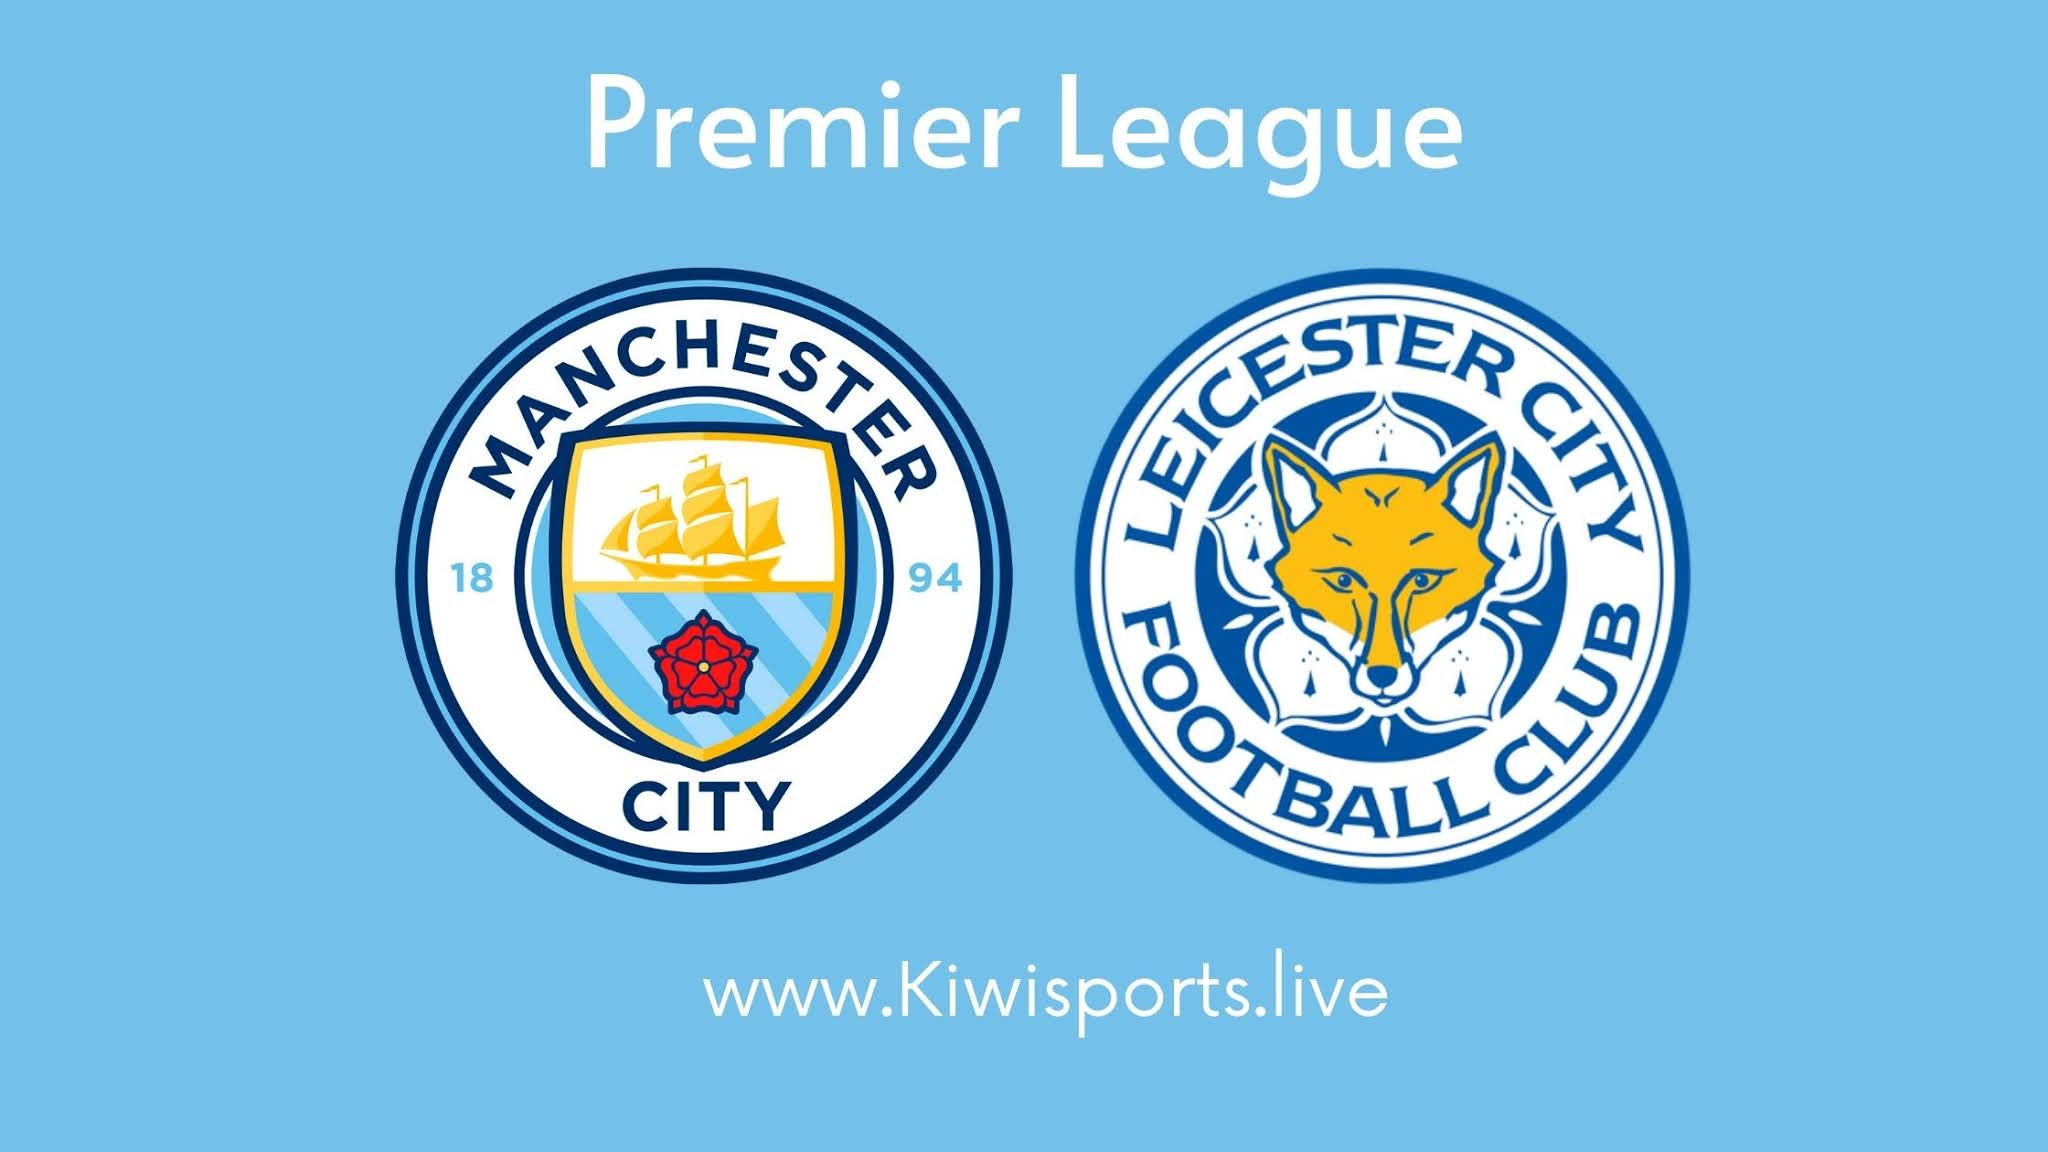 Manchester City vs Leicester City live stream free